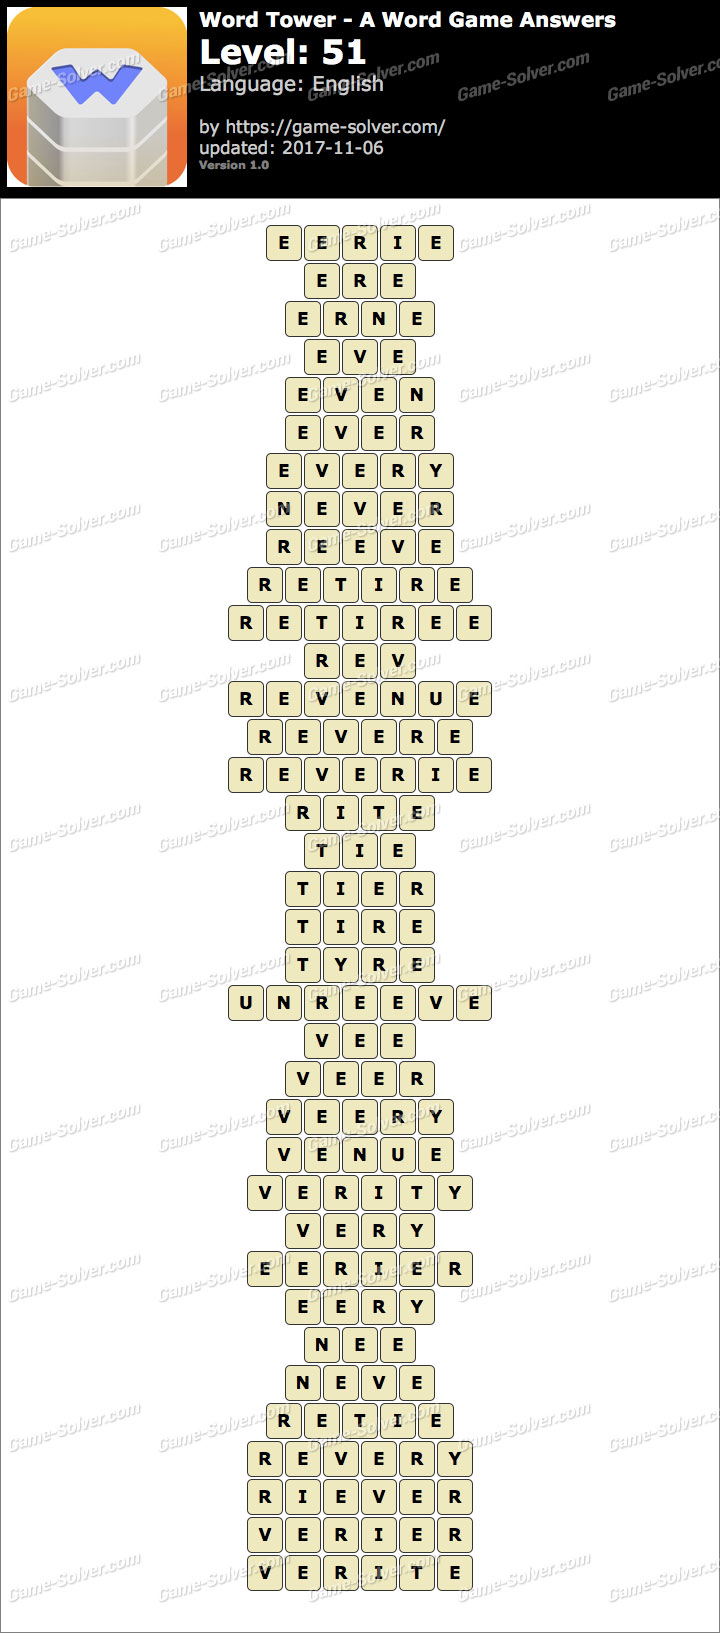 Word Tower Level 51 Answers